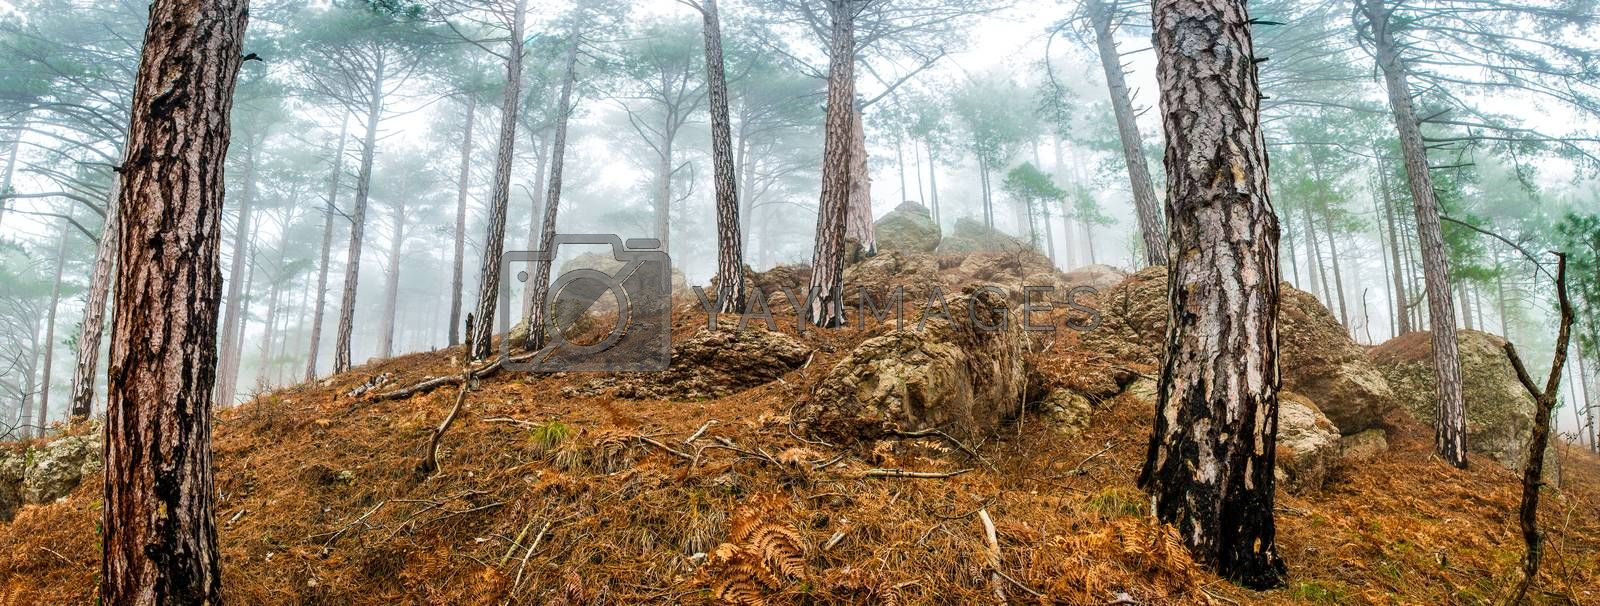 Panoramic view of pine misty forest with big trees